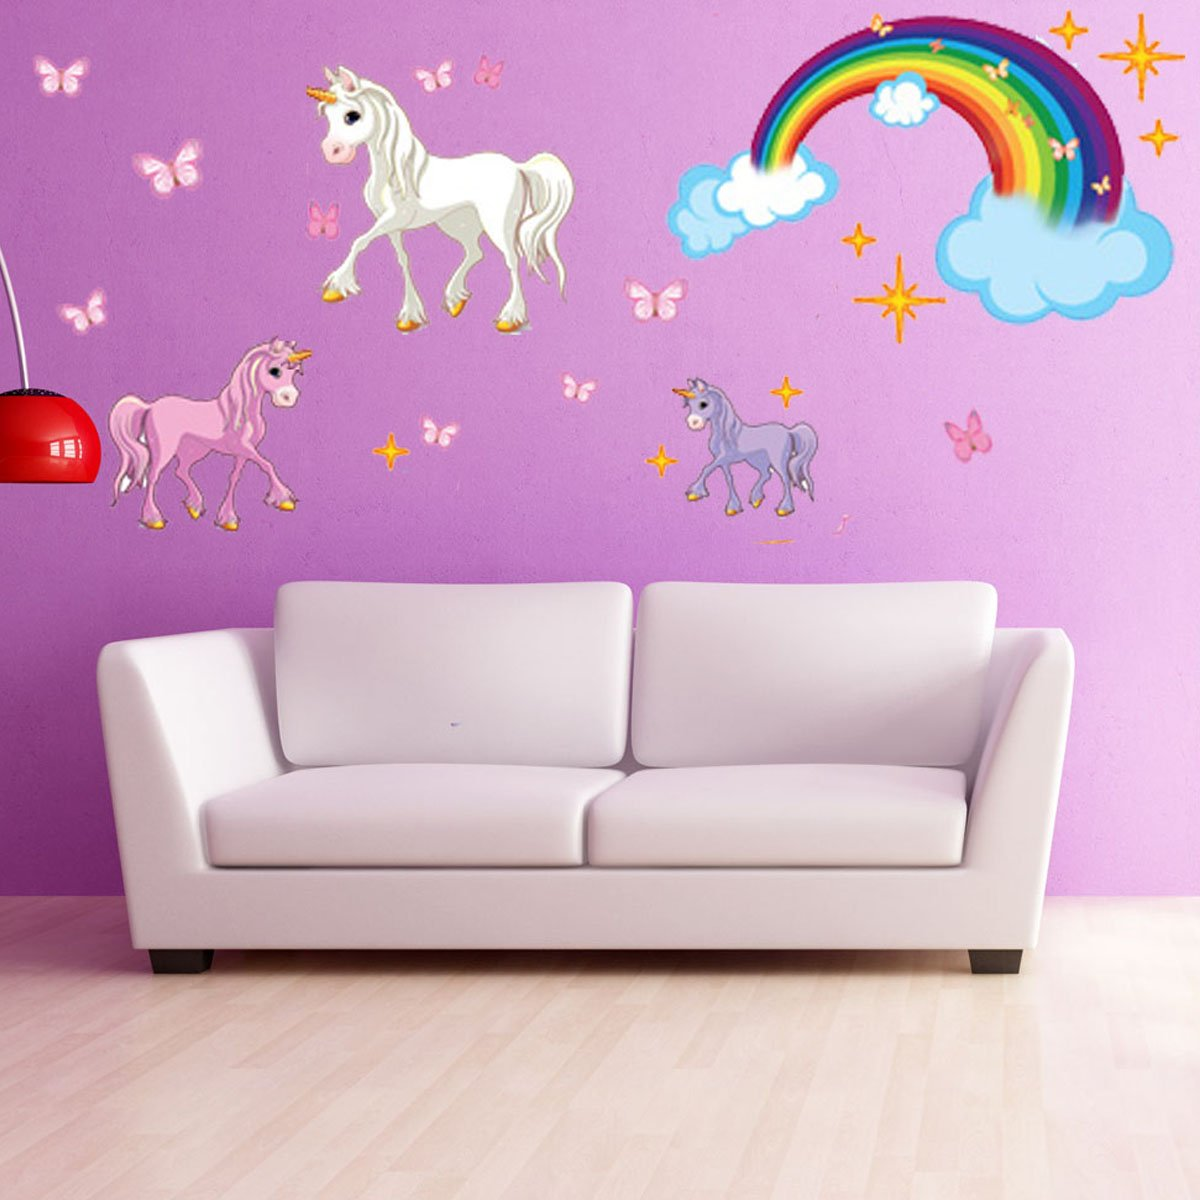 Amazon unicorn set wall decal with rainbow by style apply amazon unicorn set wall decal with rainbow by style apply girls room wall decal sticker for girls nursery vinyl wall art kids room decor ds amipublicfo Gallery